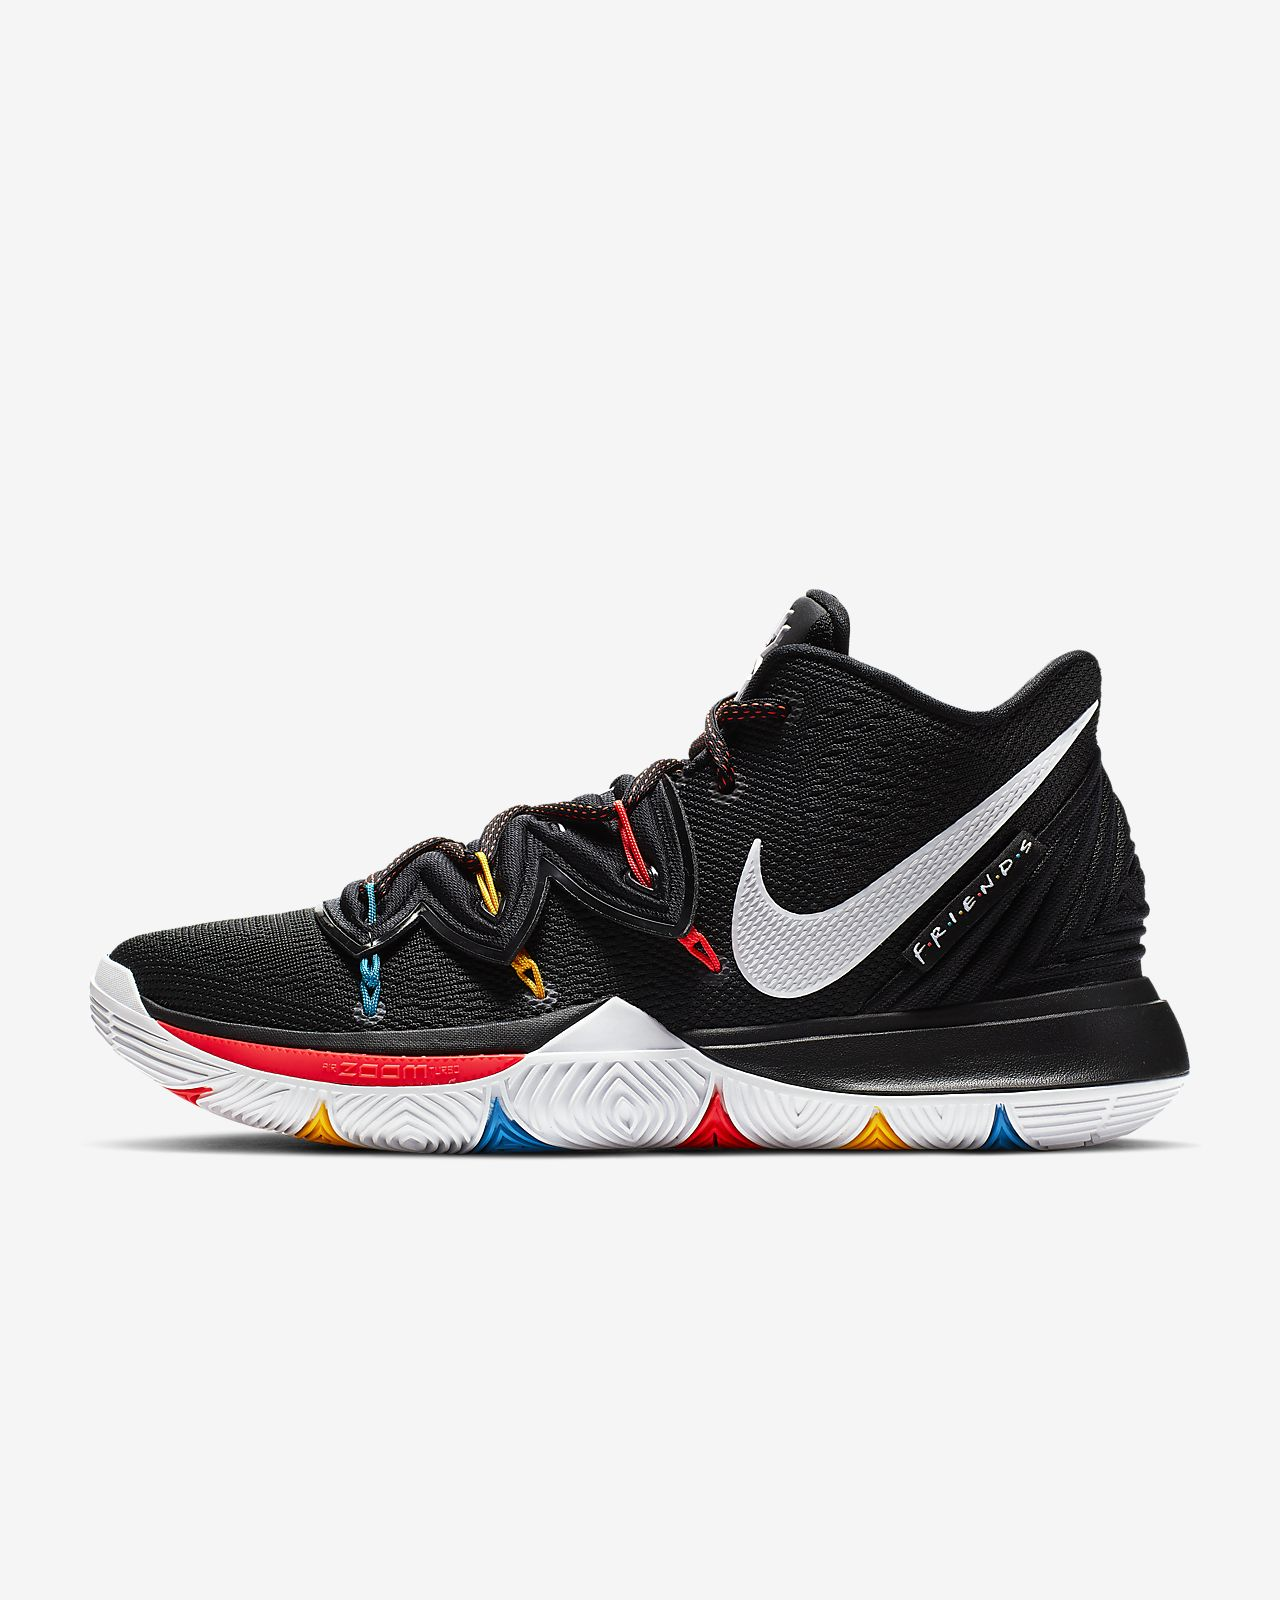 4cef392617e Kyrie 5 x Friends Basketball Shoe. Nike.com